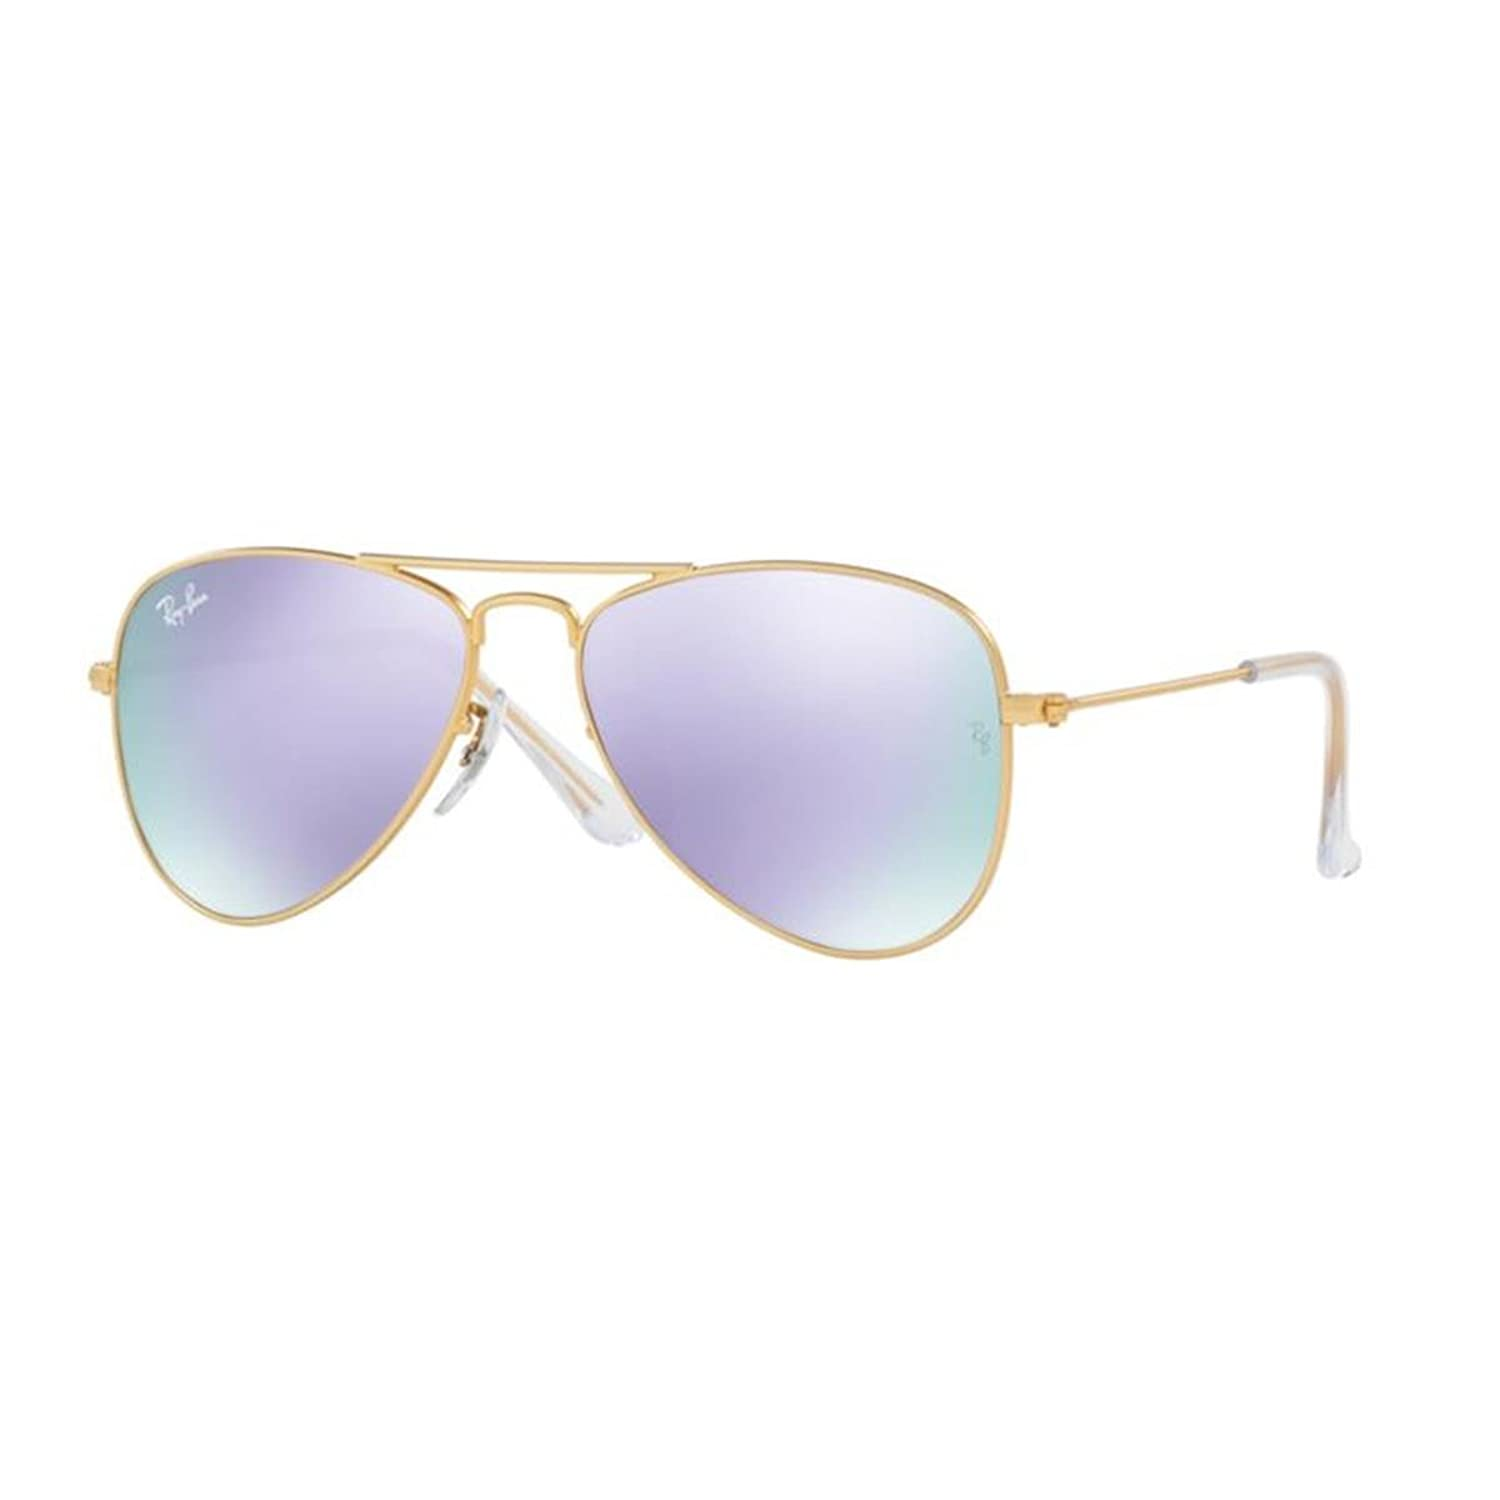 Ray Ban Junior Gafas de sol de aviador Flash lila oro mate